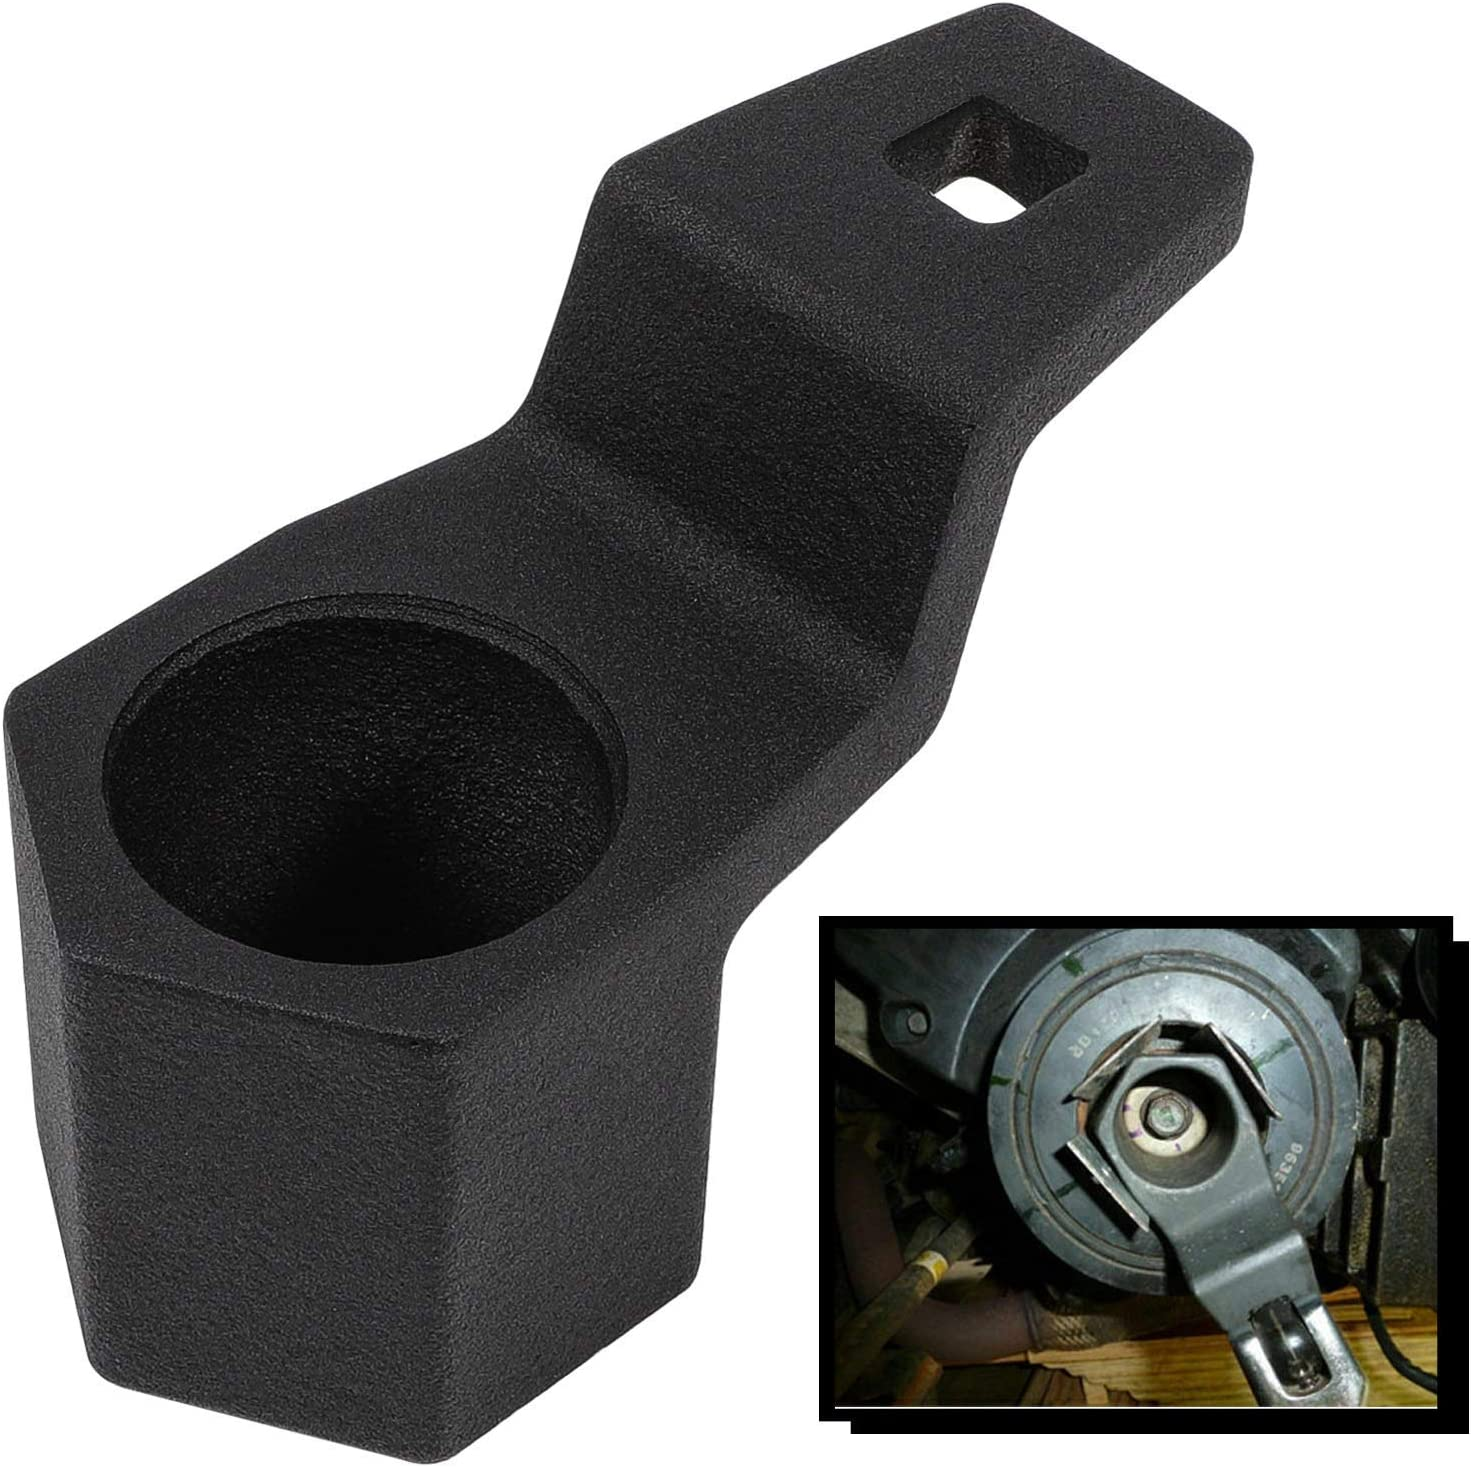 1x 50mm Crank Pulley Wrench Crankshaft Removal Tool for Honda Odyssey Civic CR-V